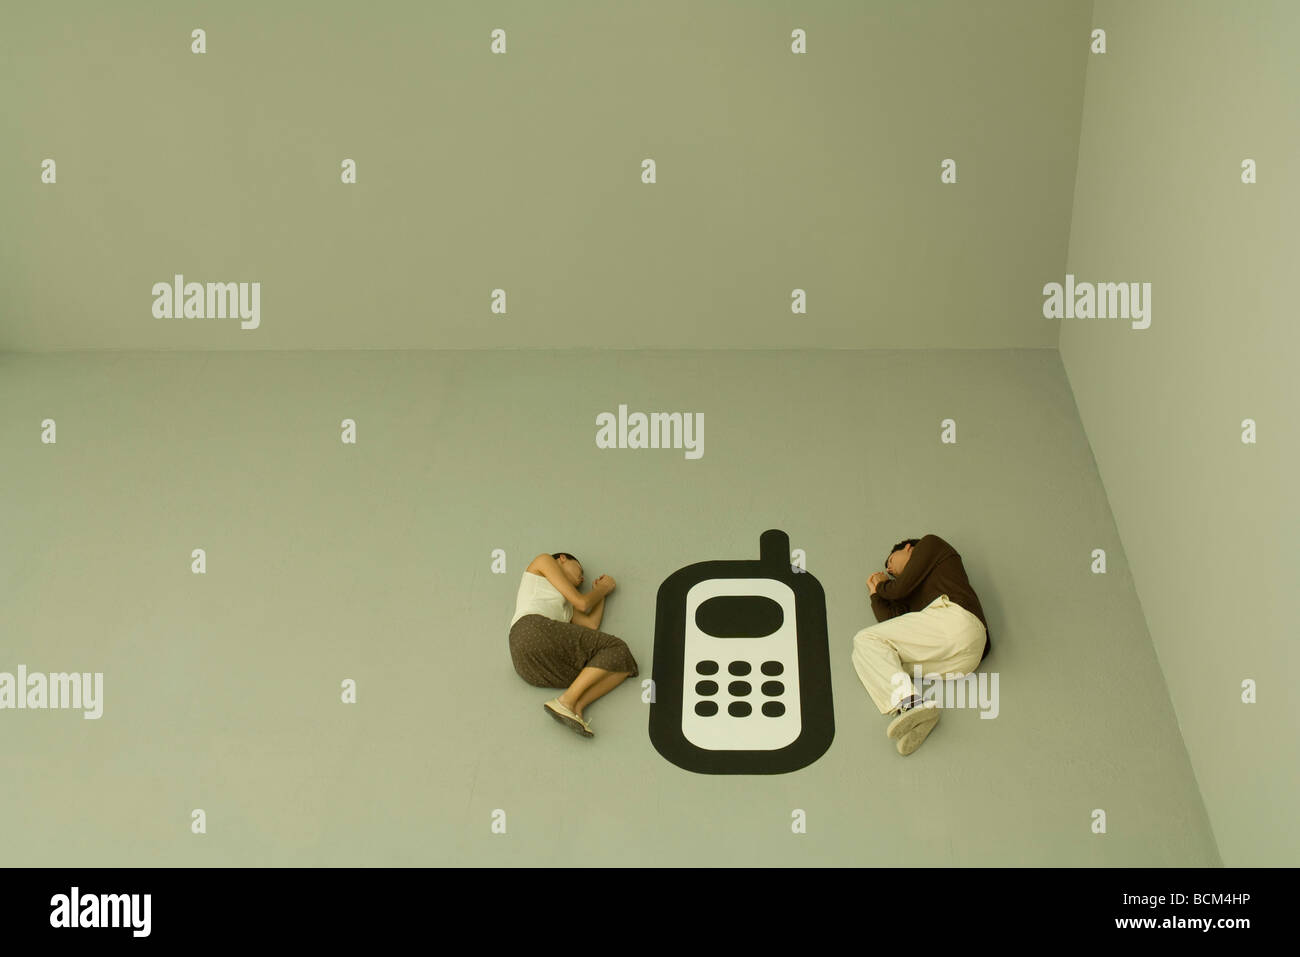 Man and woman lying down on the ground with large cell phone graphic between them - Stock Image